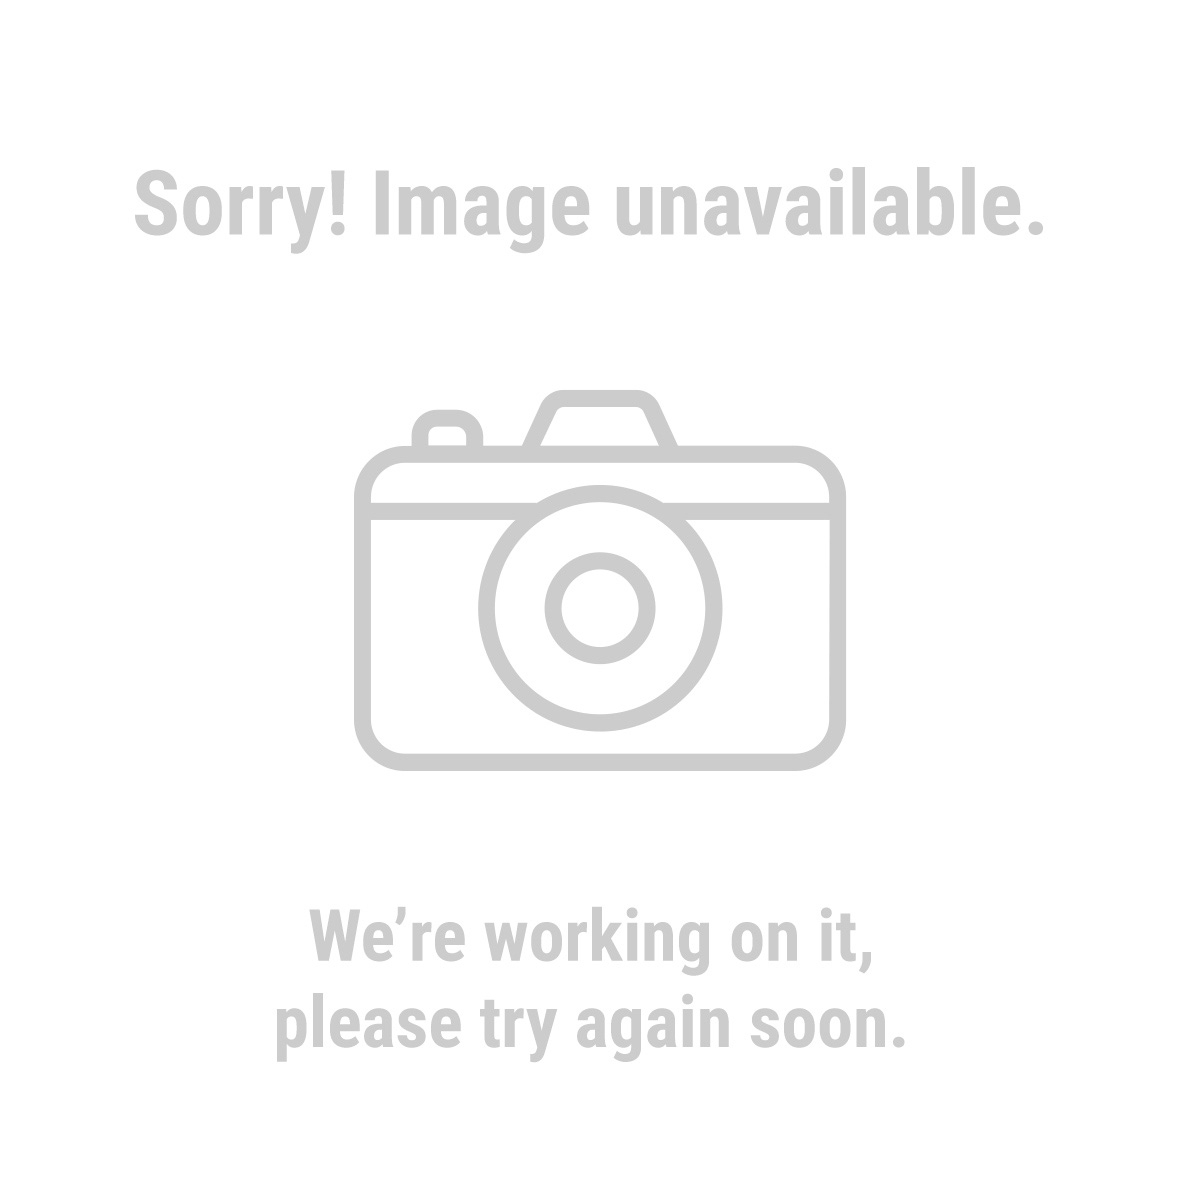 Central-Forge 3999 15 Lb. Anvil